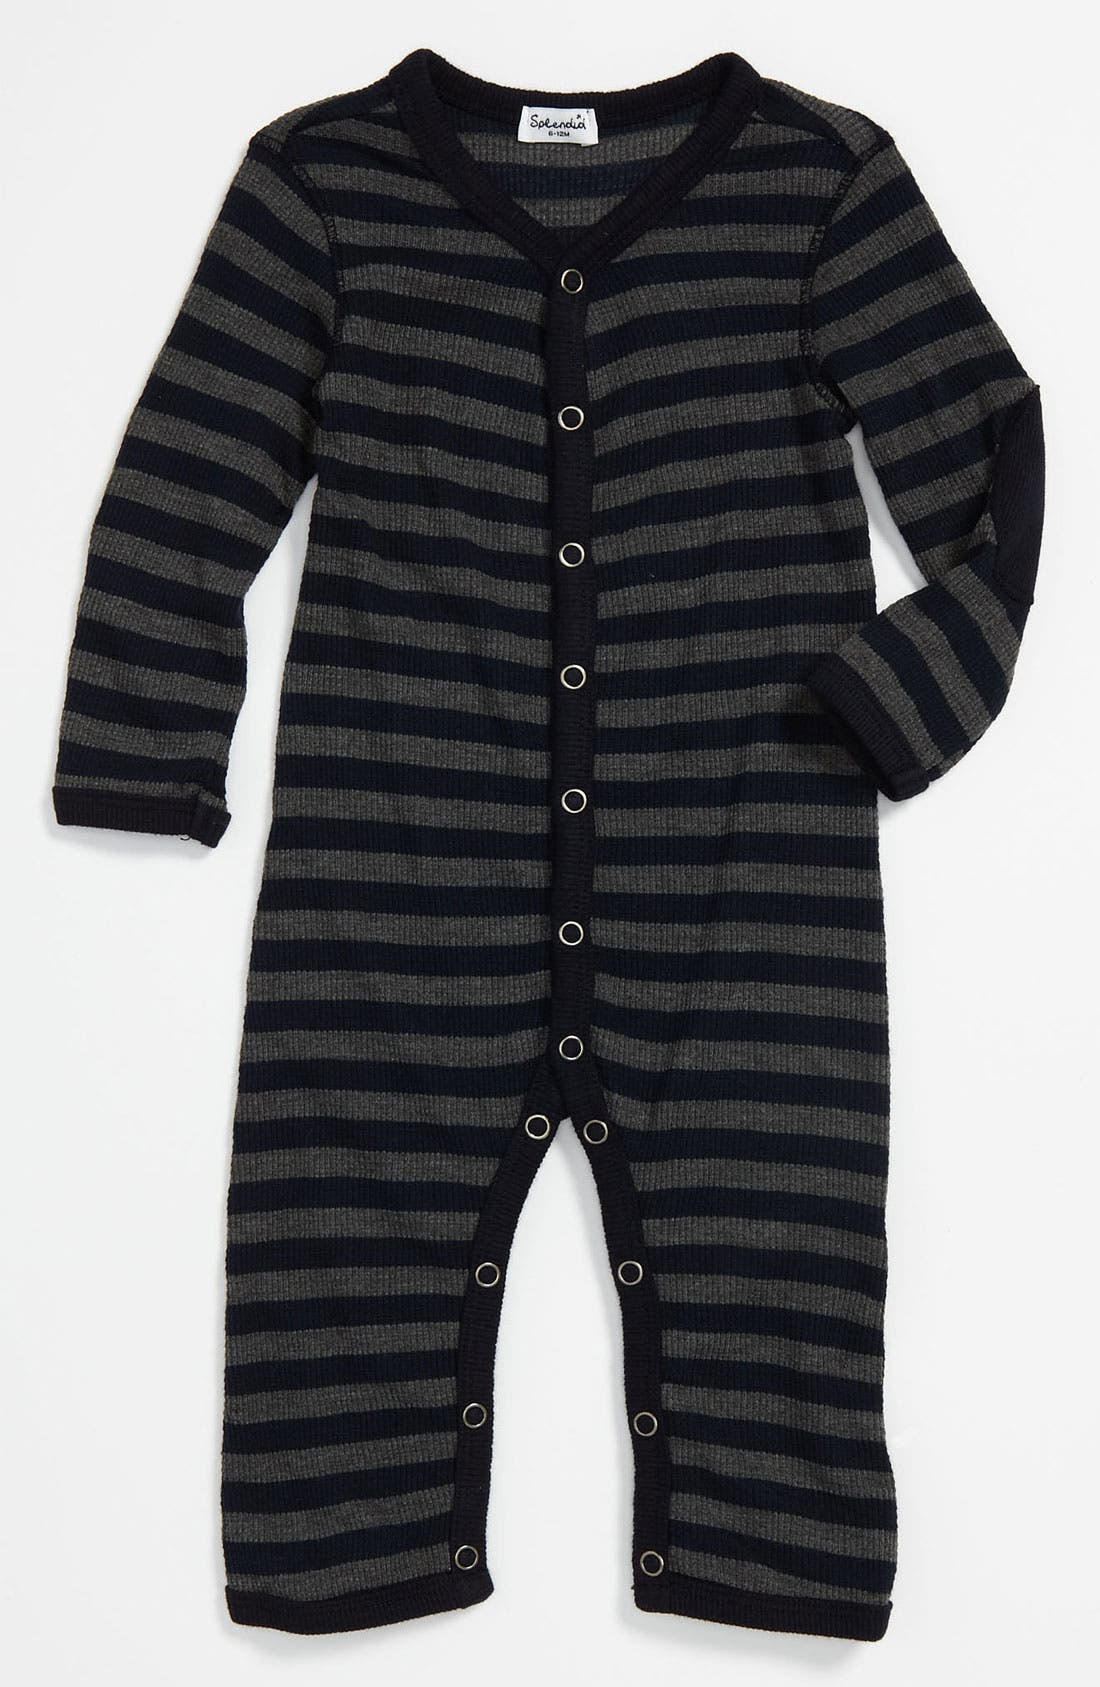 Main Image - Splendid Stripe Thermal Knit Romper (Infant)